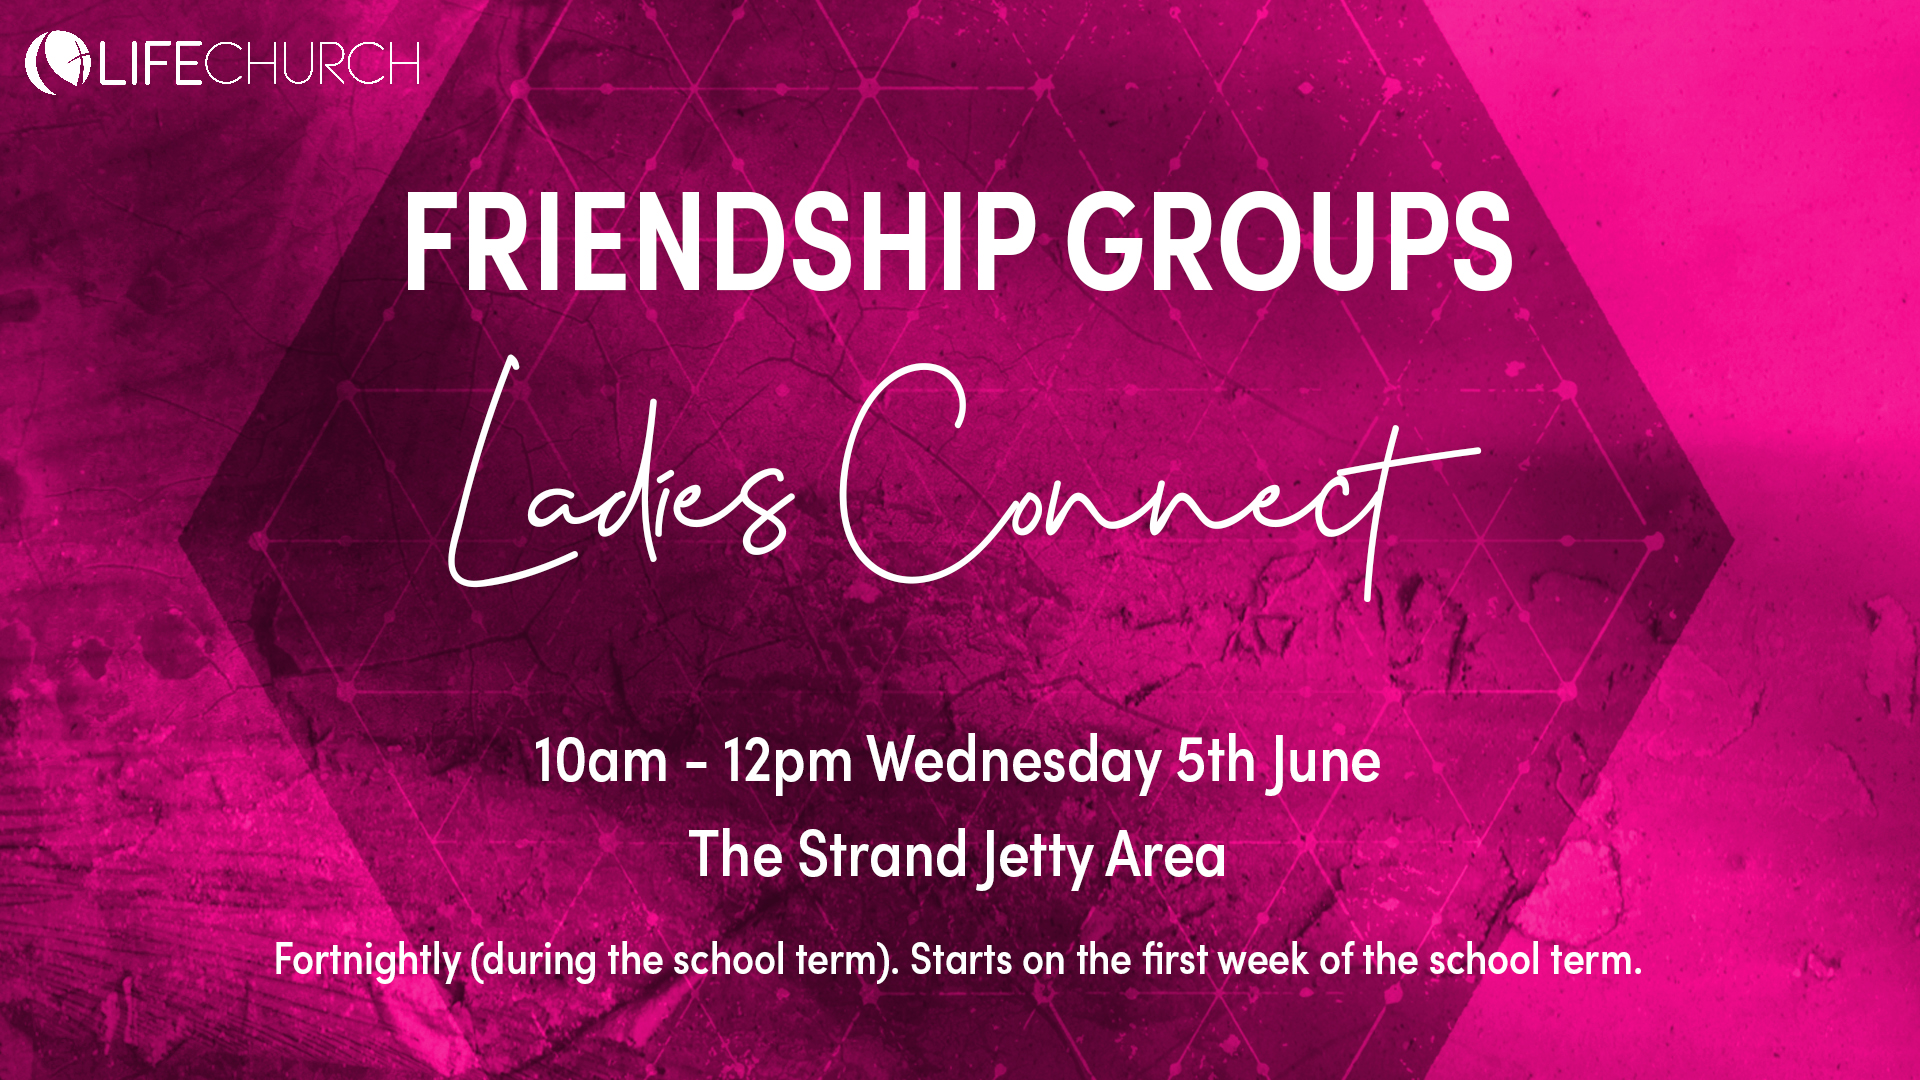 Ladies-Connect-foyer-5th-June.jpg